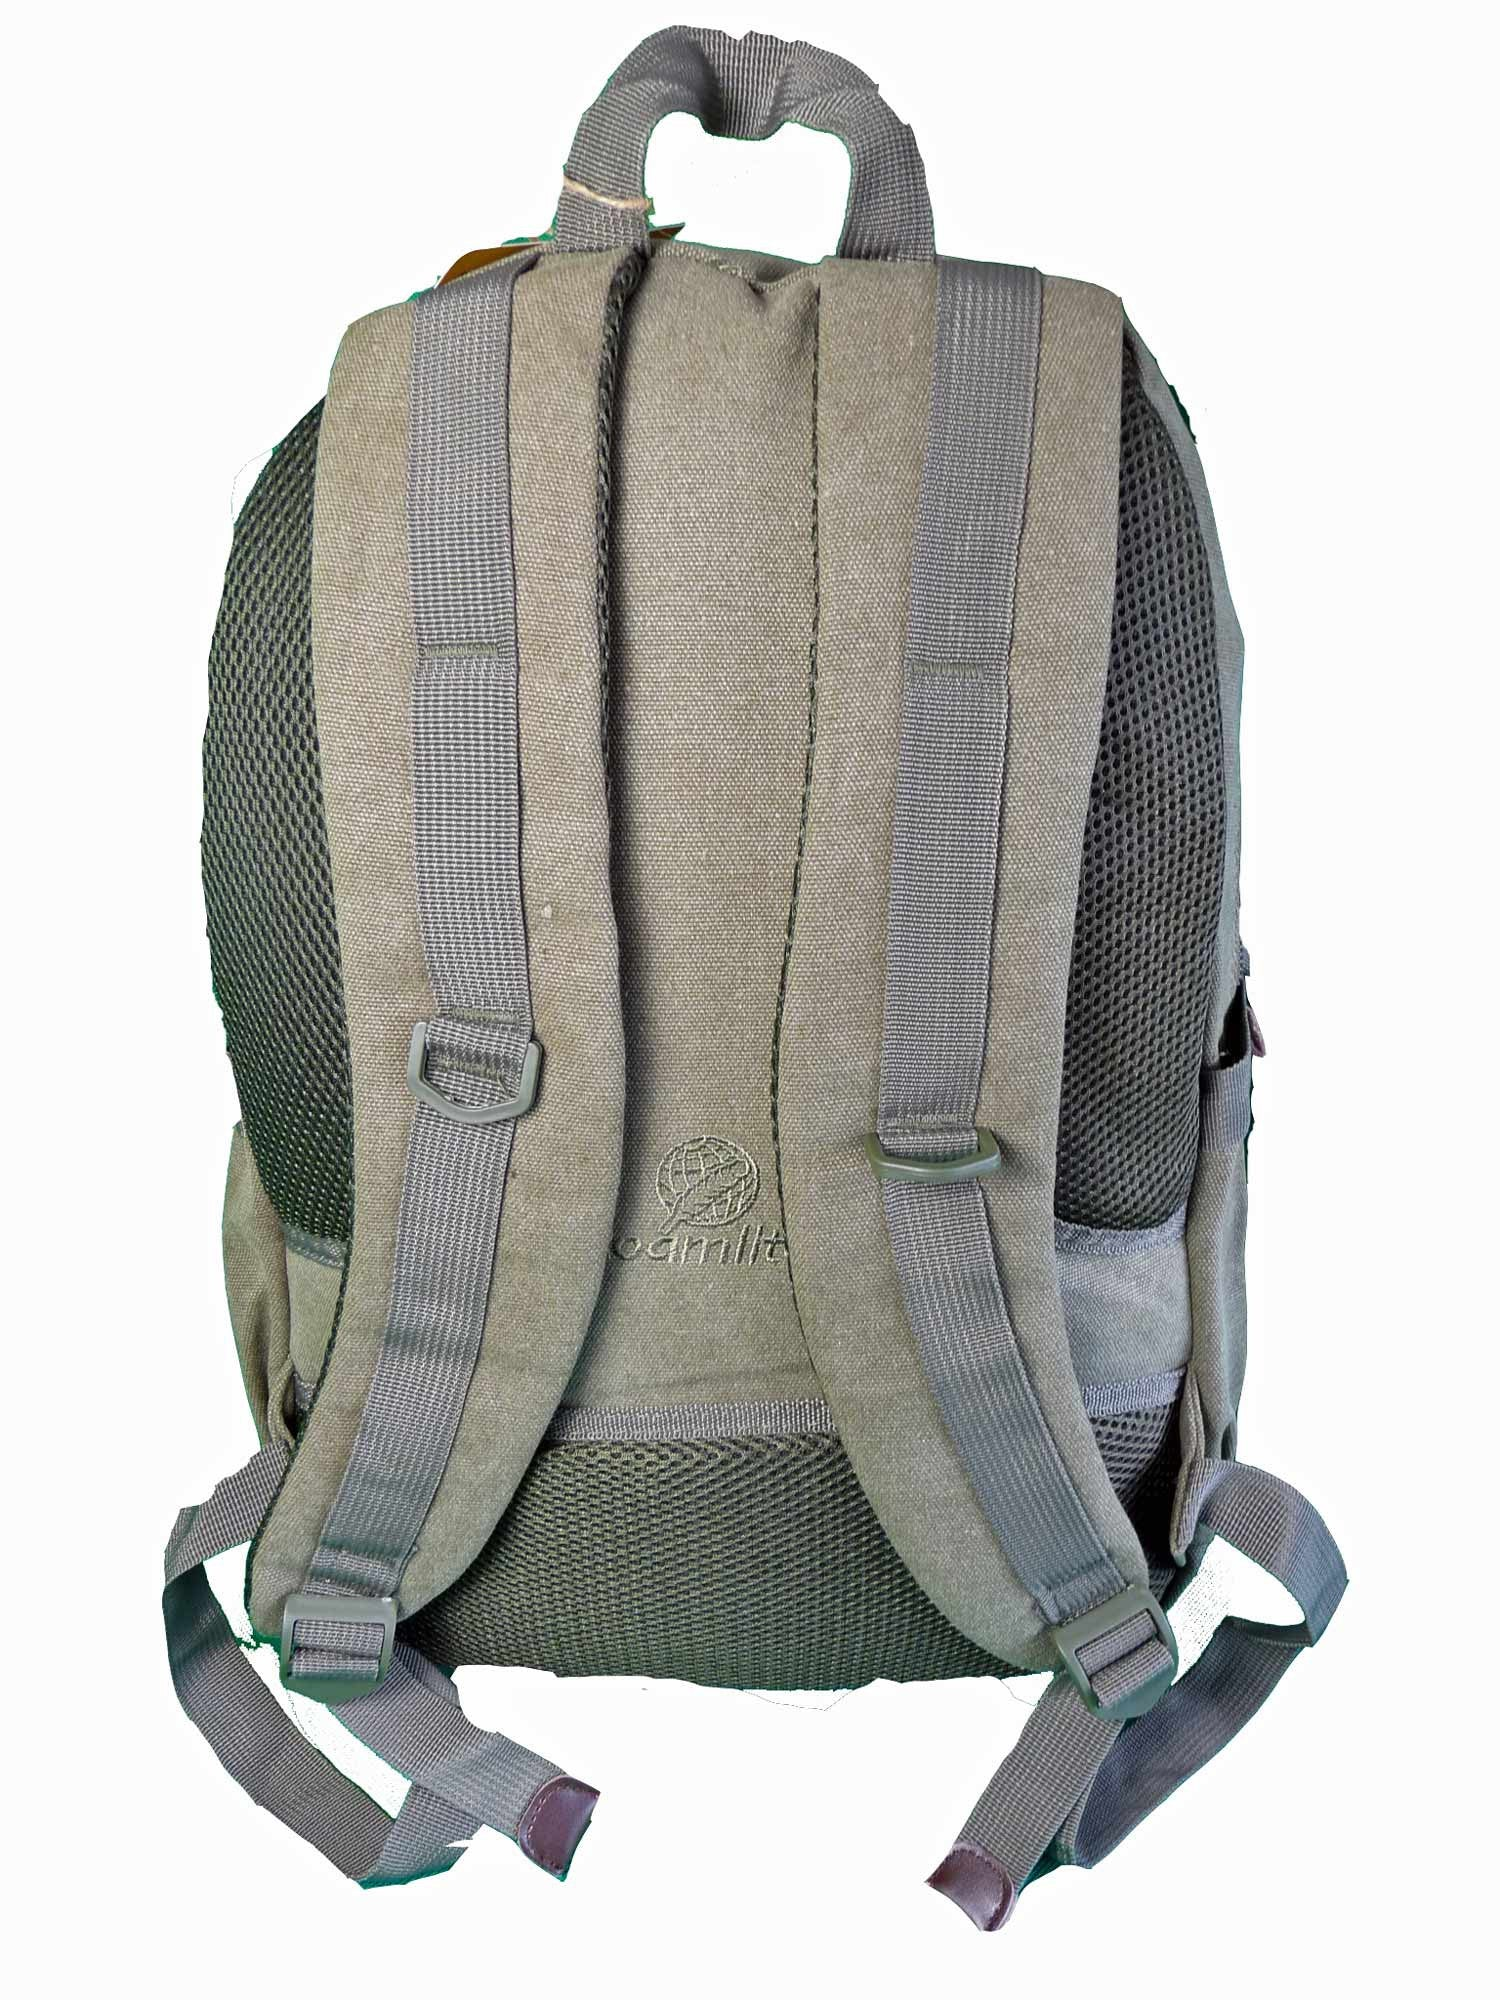 MacBook Air Backpack Rucksack Bag RL25G rear view